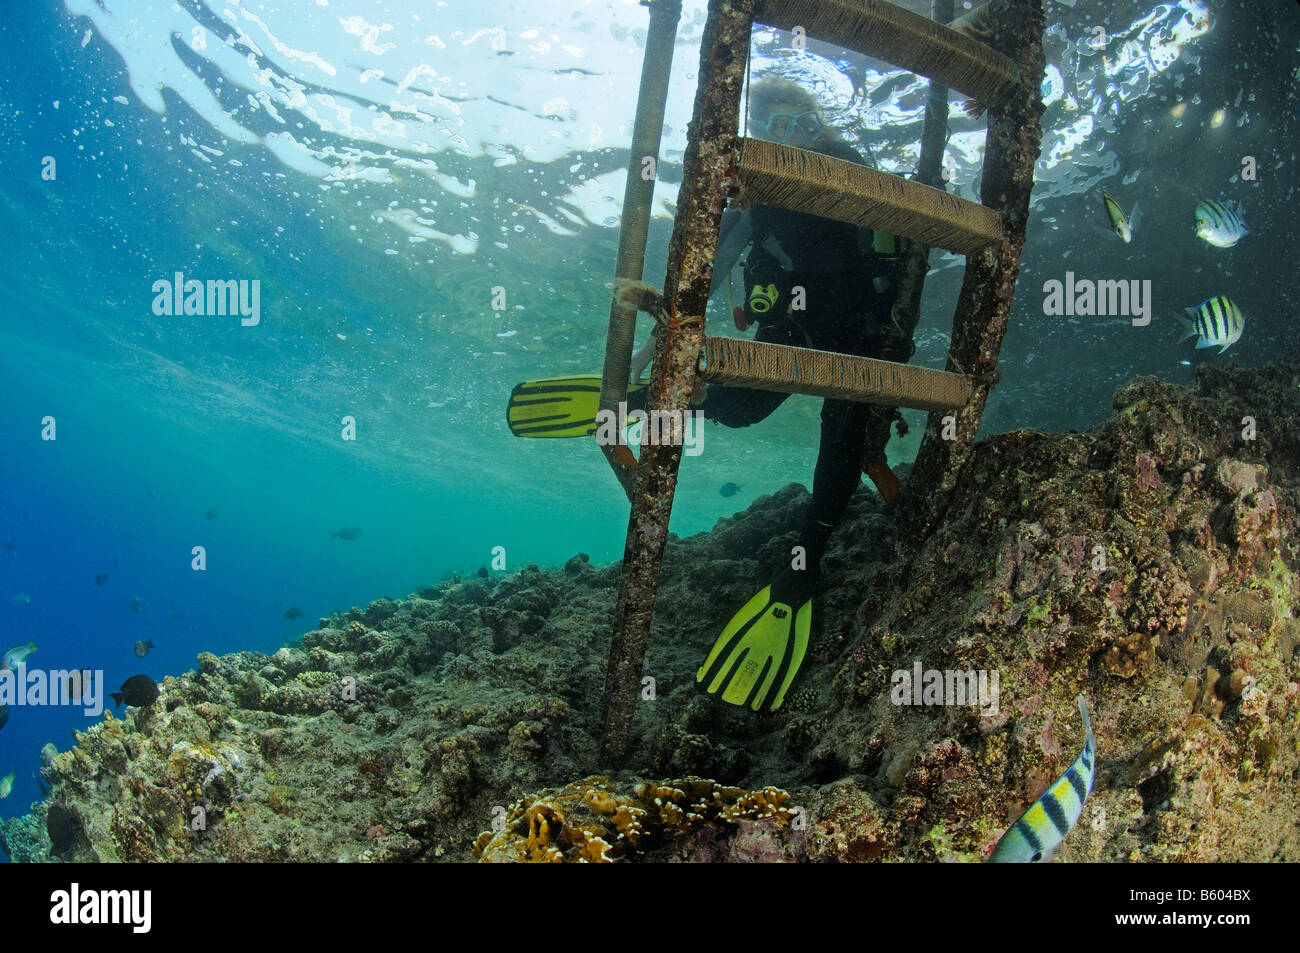 scuba diver and ladder underwater, Red Sea - Stock Image